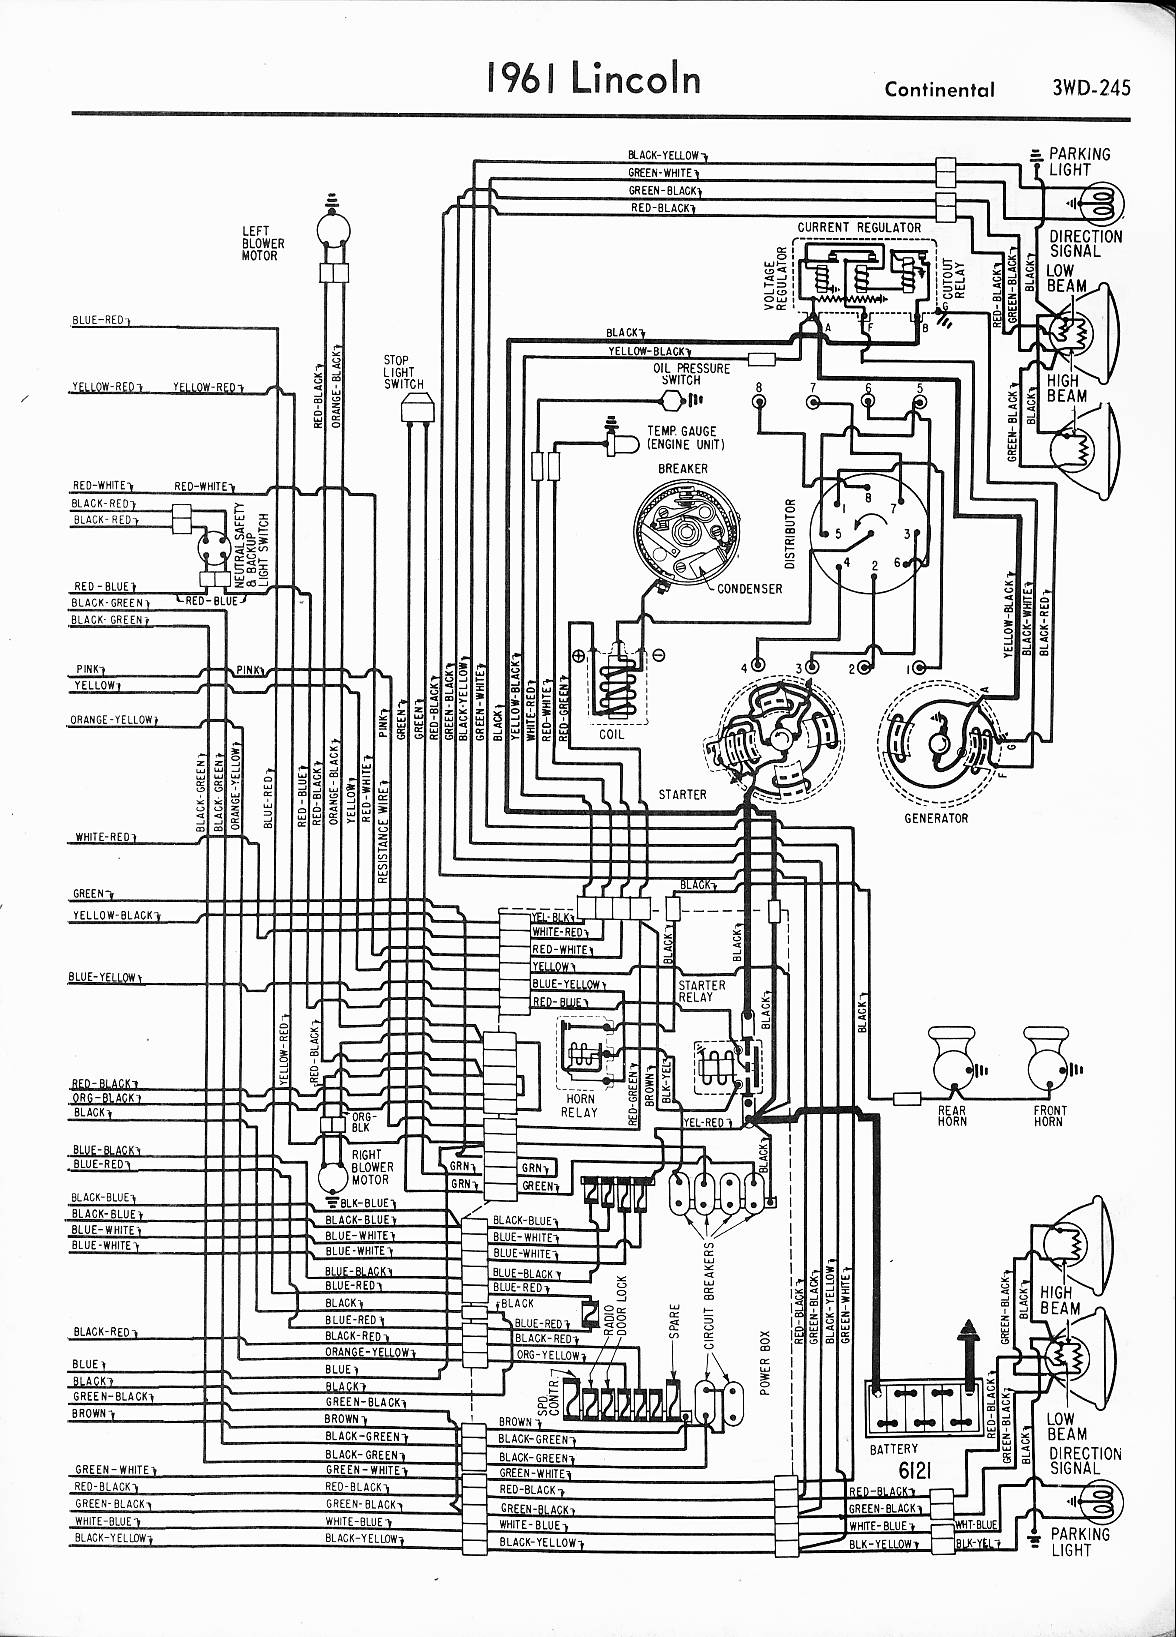 1972 lincoln wiring diagrams lincoln wiring diagrams: 1957 - 1965 1972 buick wiring diagrams automotive #3